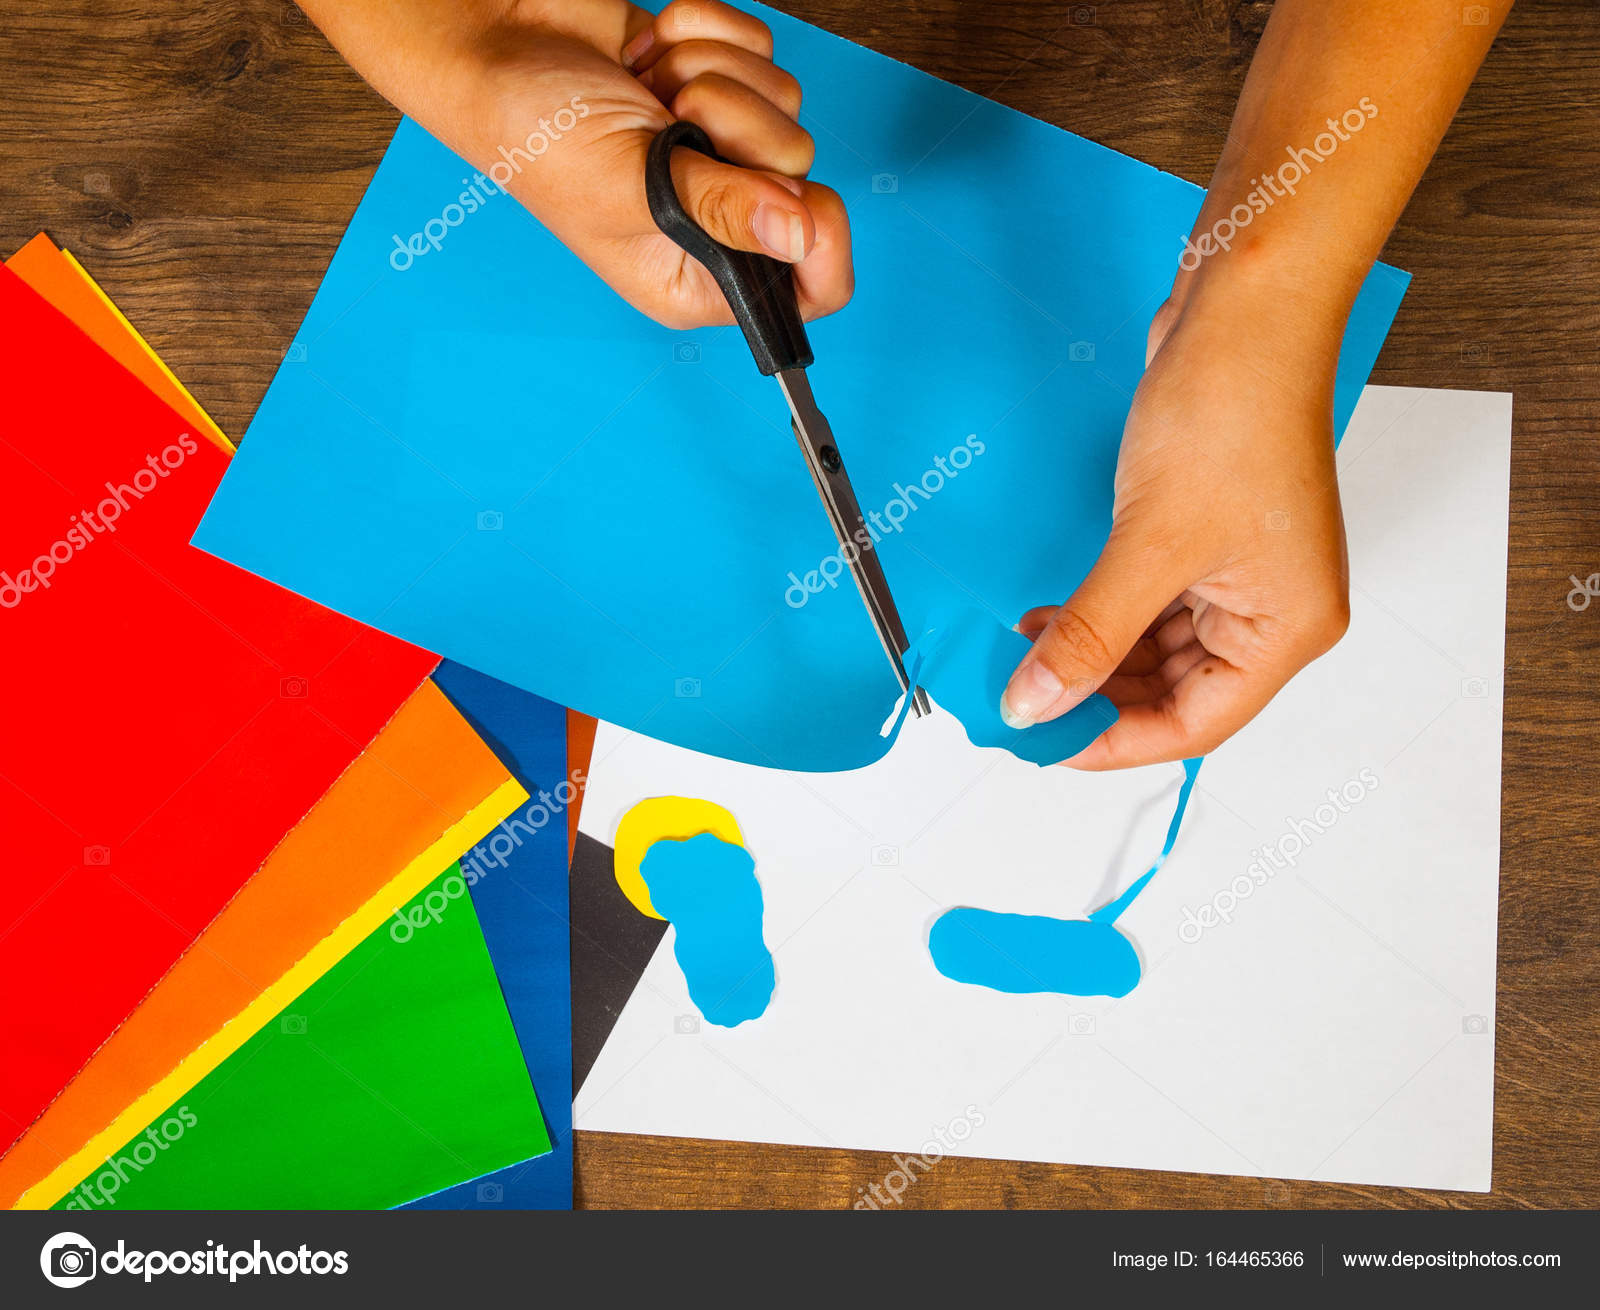 Child Cuts Out Of Paper Sheets Colored Kids Art Crafts Concept Handmade On Wooden Table Top View Photo By Semenovp